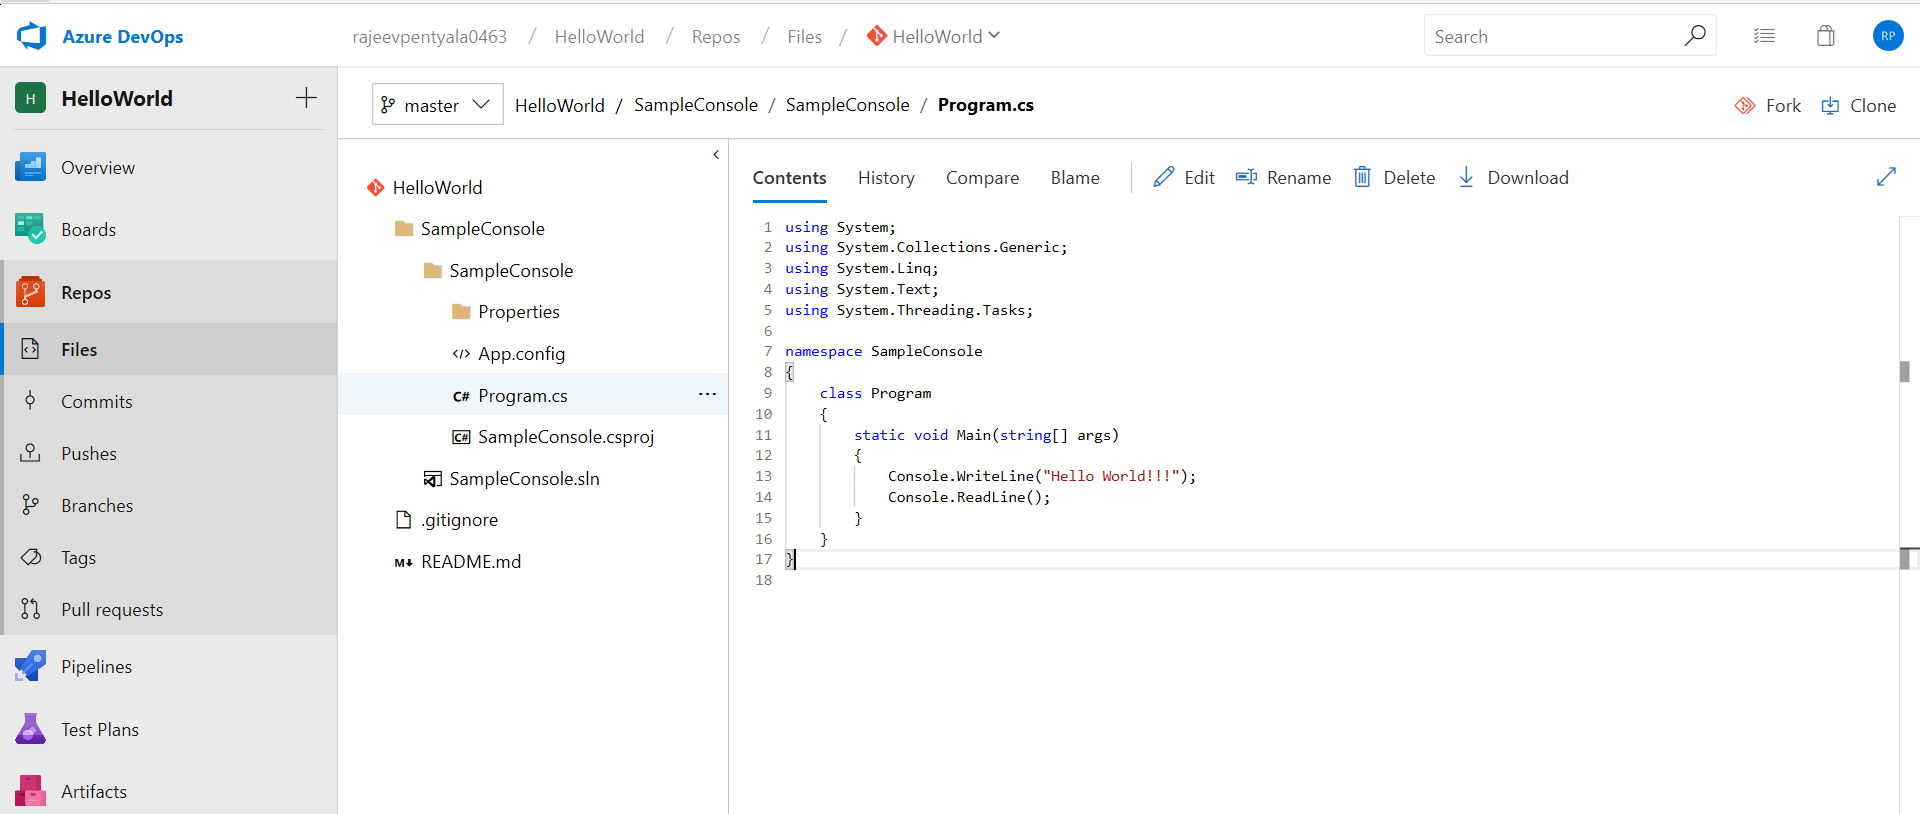 Azure DevOps – Getting started by committing a C# console